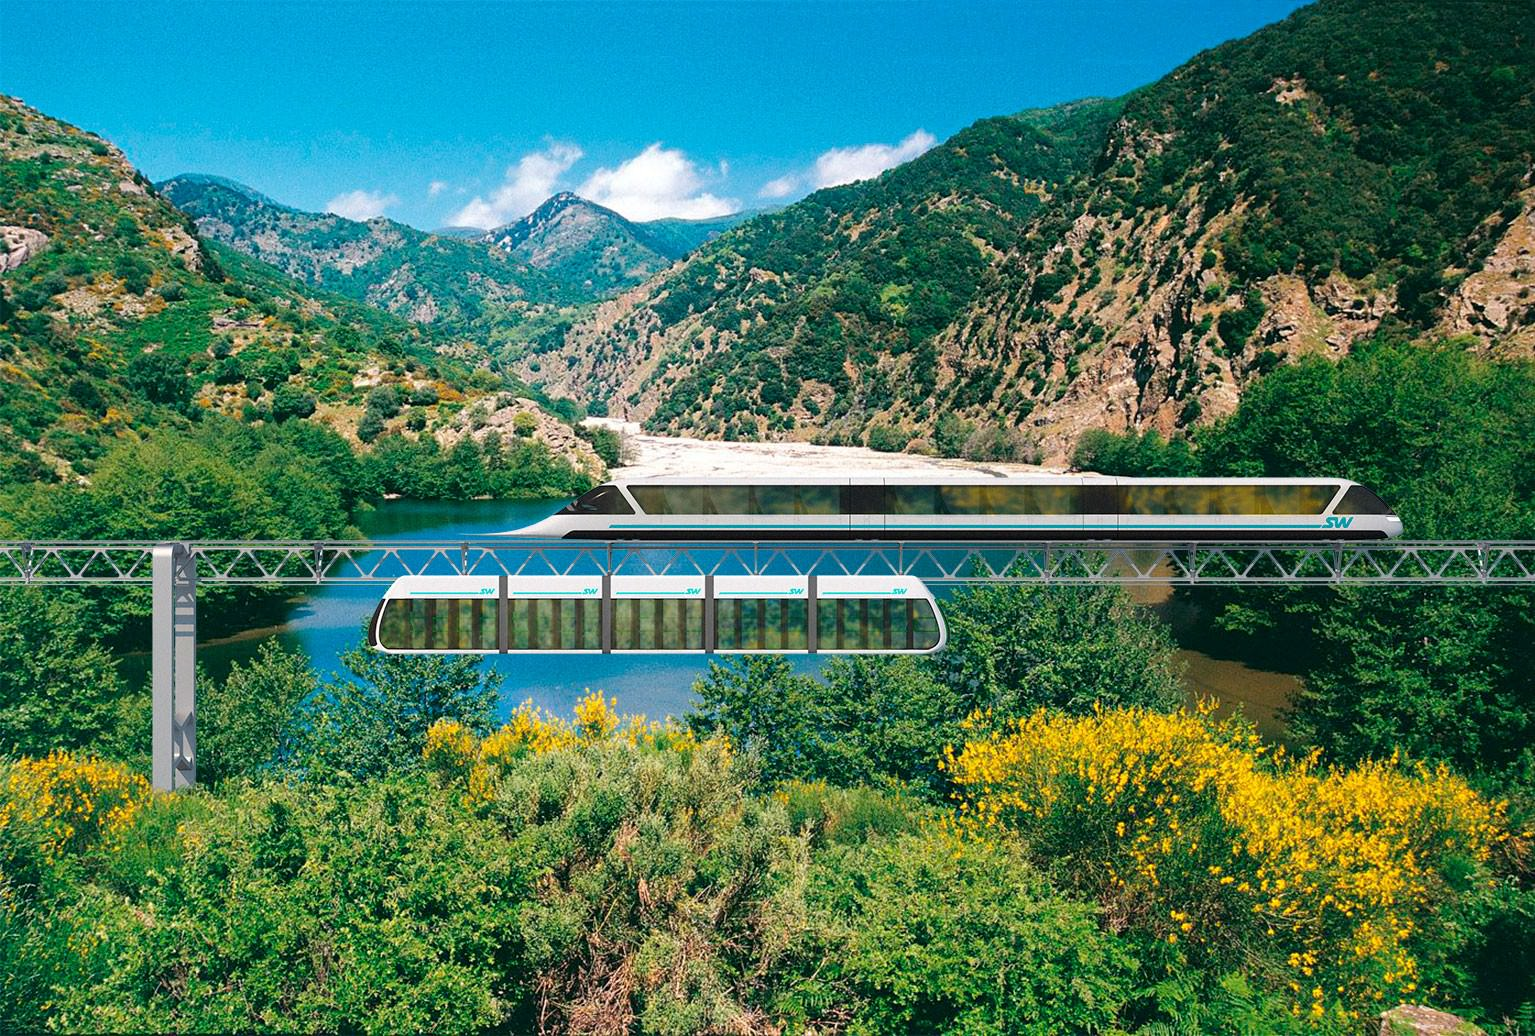 SkyWay Technology for the Development of Rural Tourism in Italy